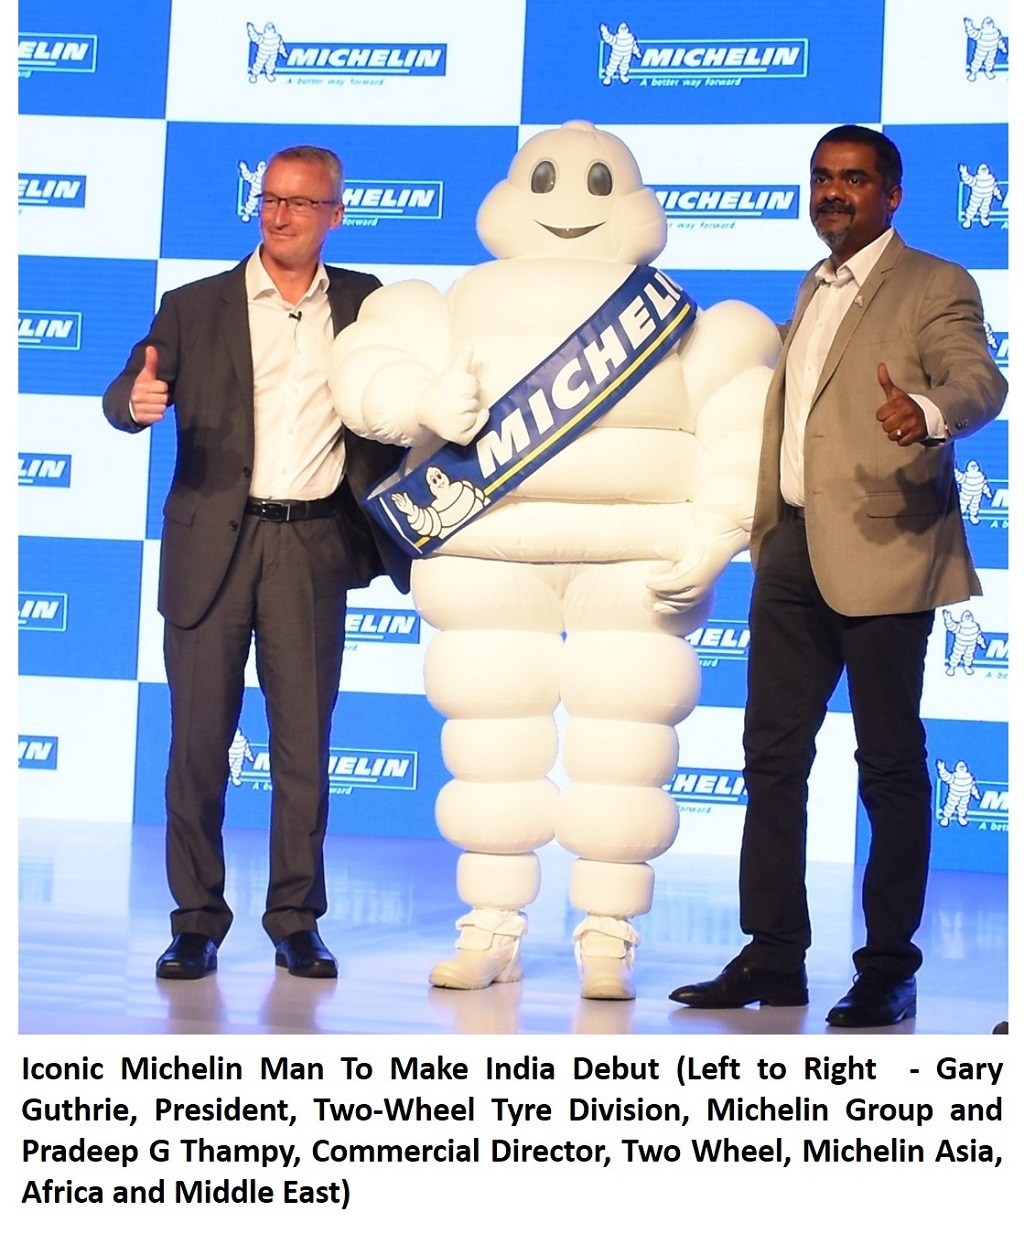 Michelin Man To Make India Debut- July 21